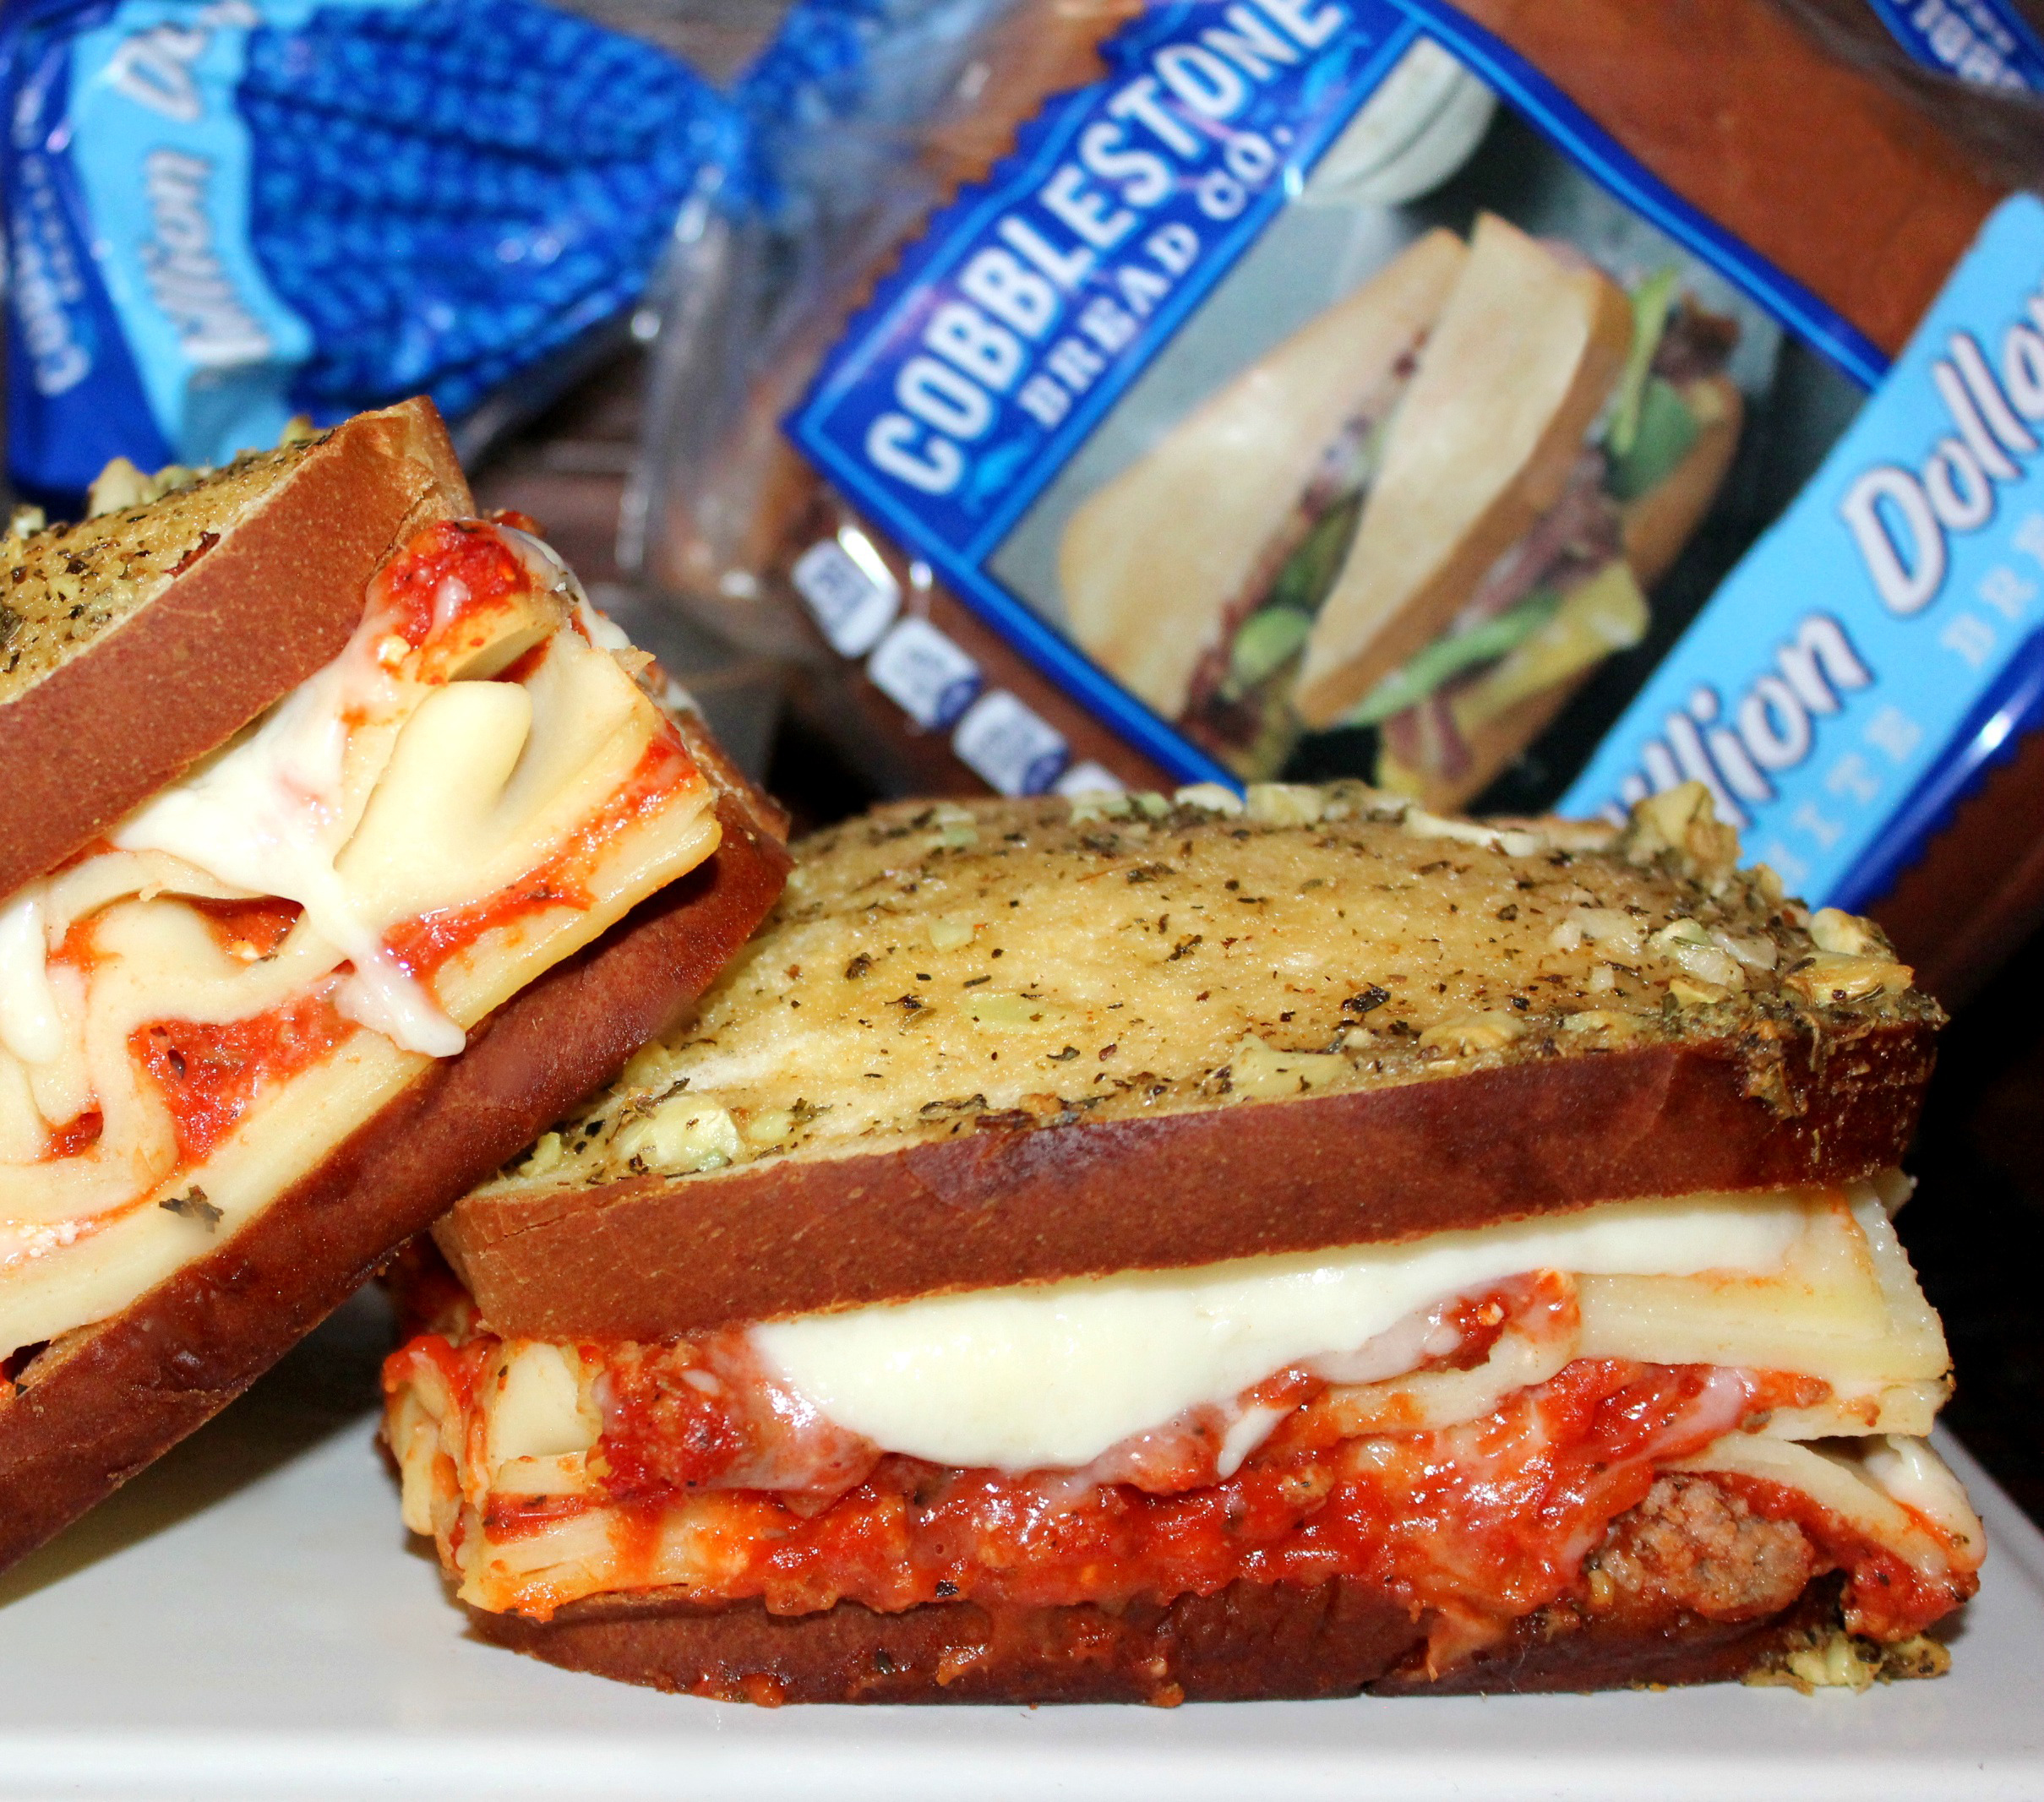 Take your sandwiches to the next level with one ingredient